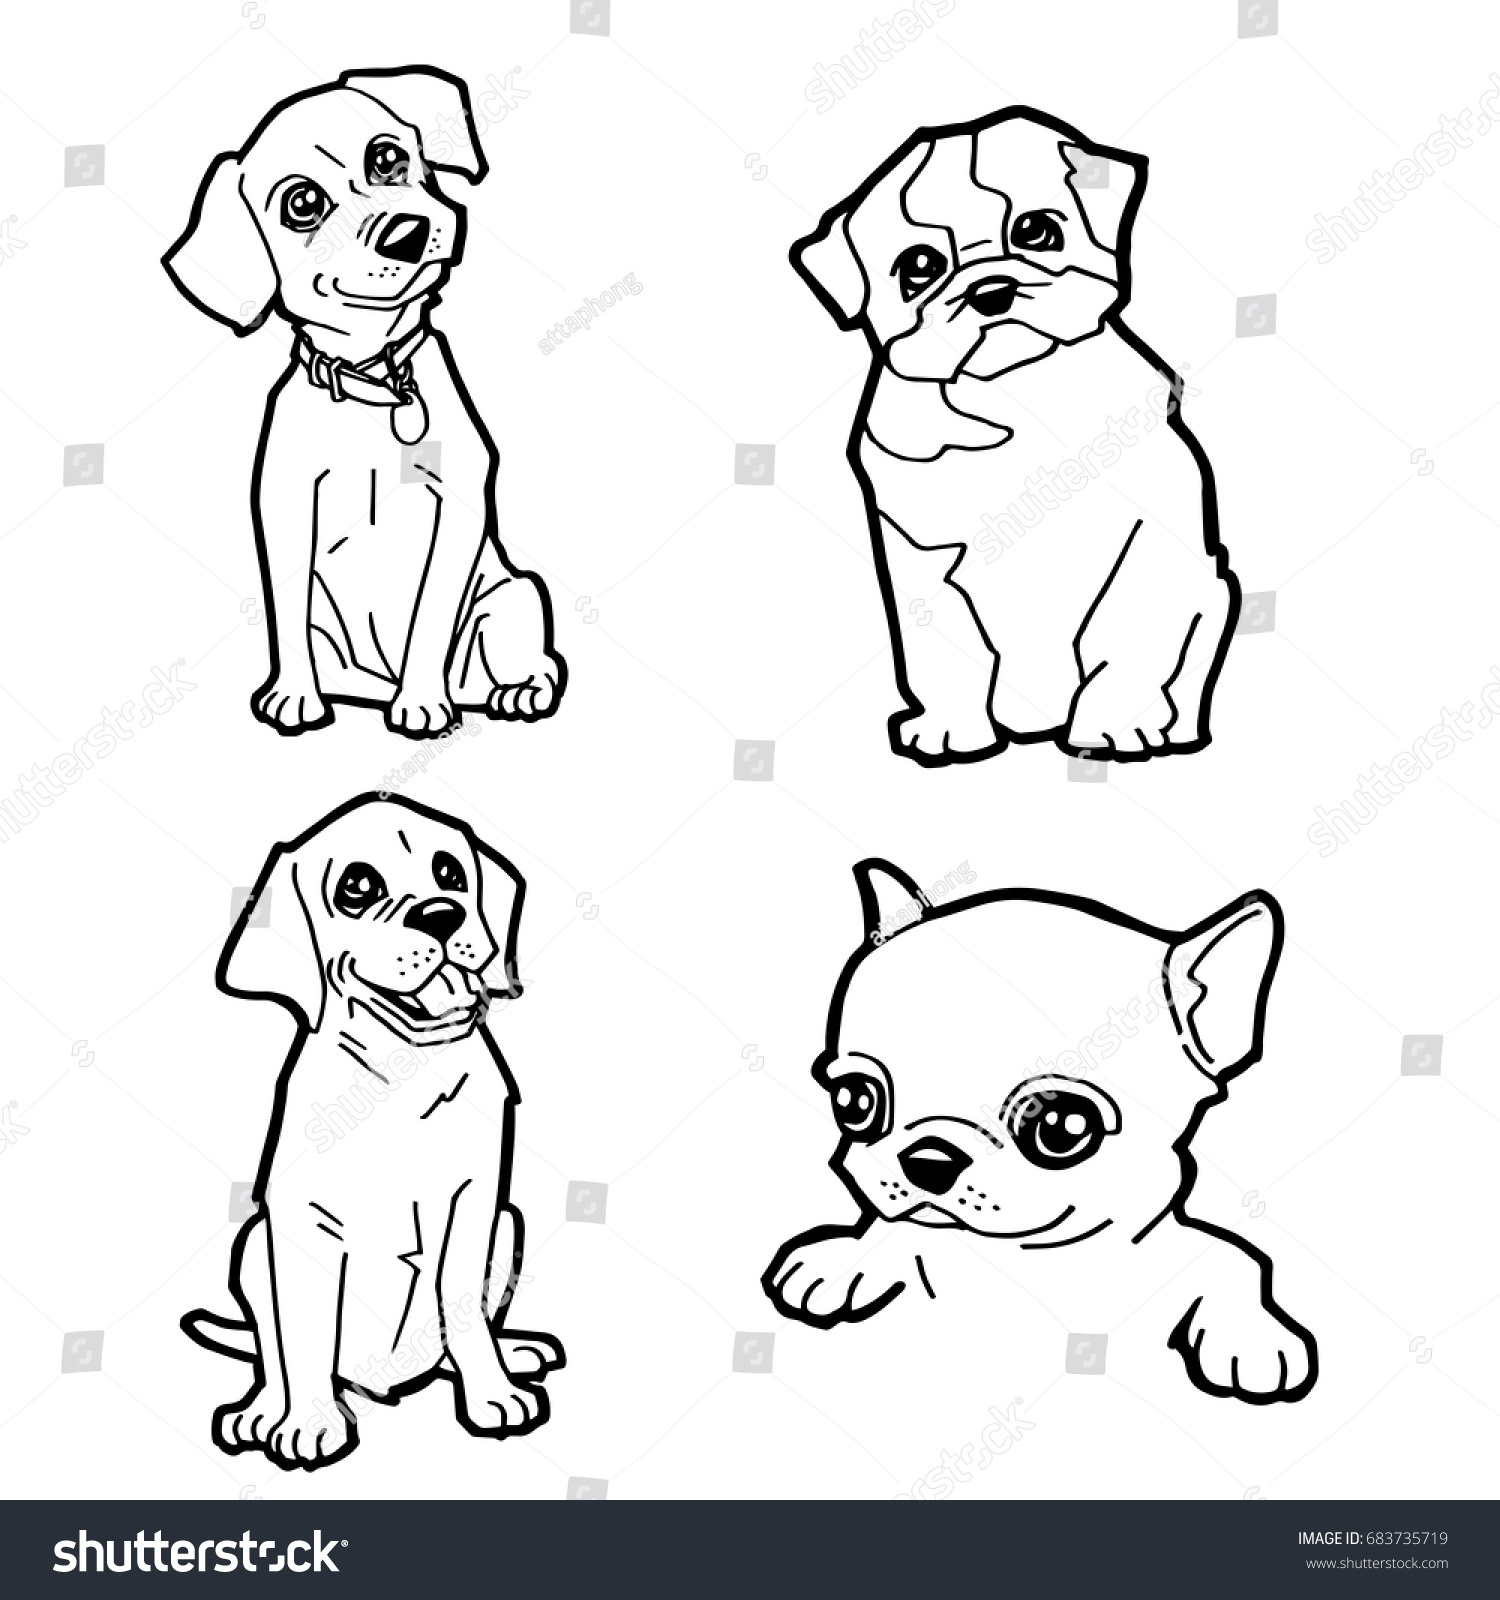 set cartoon cute dog coloring page stock vector 683735719